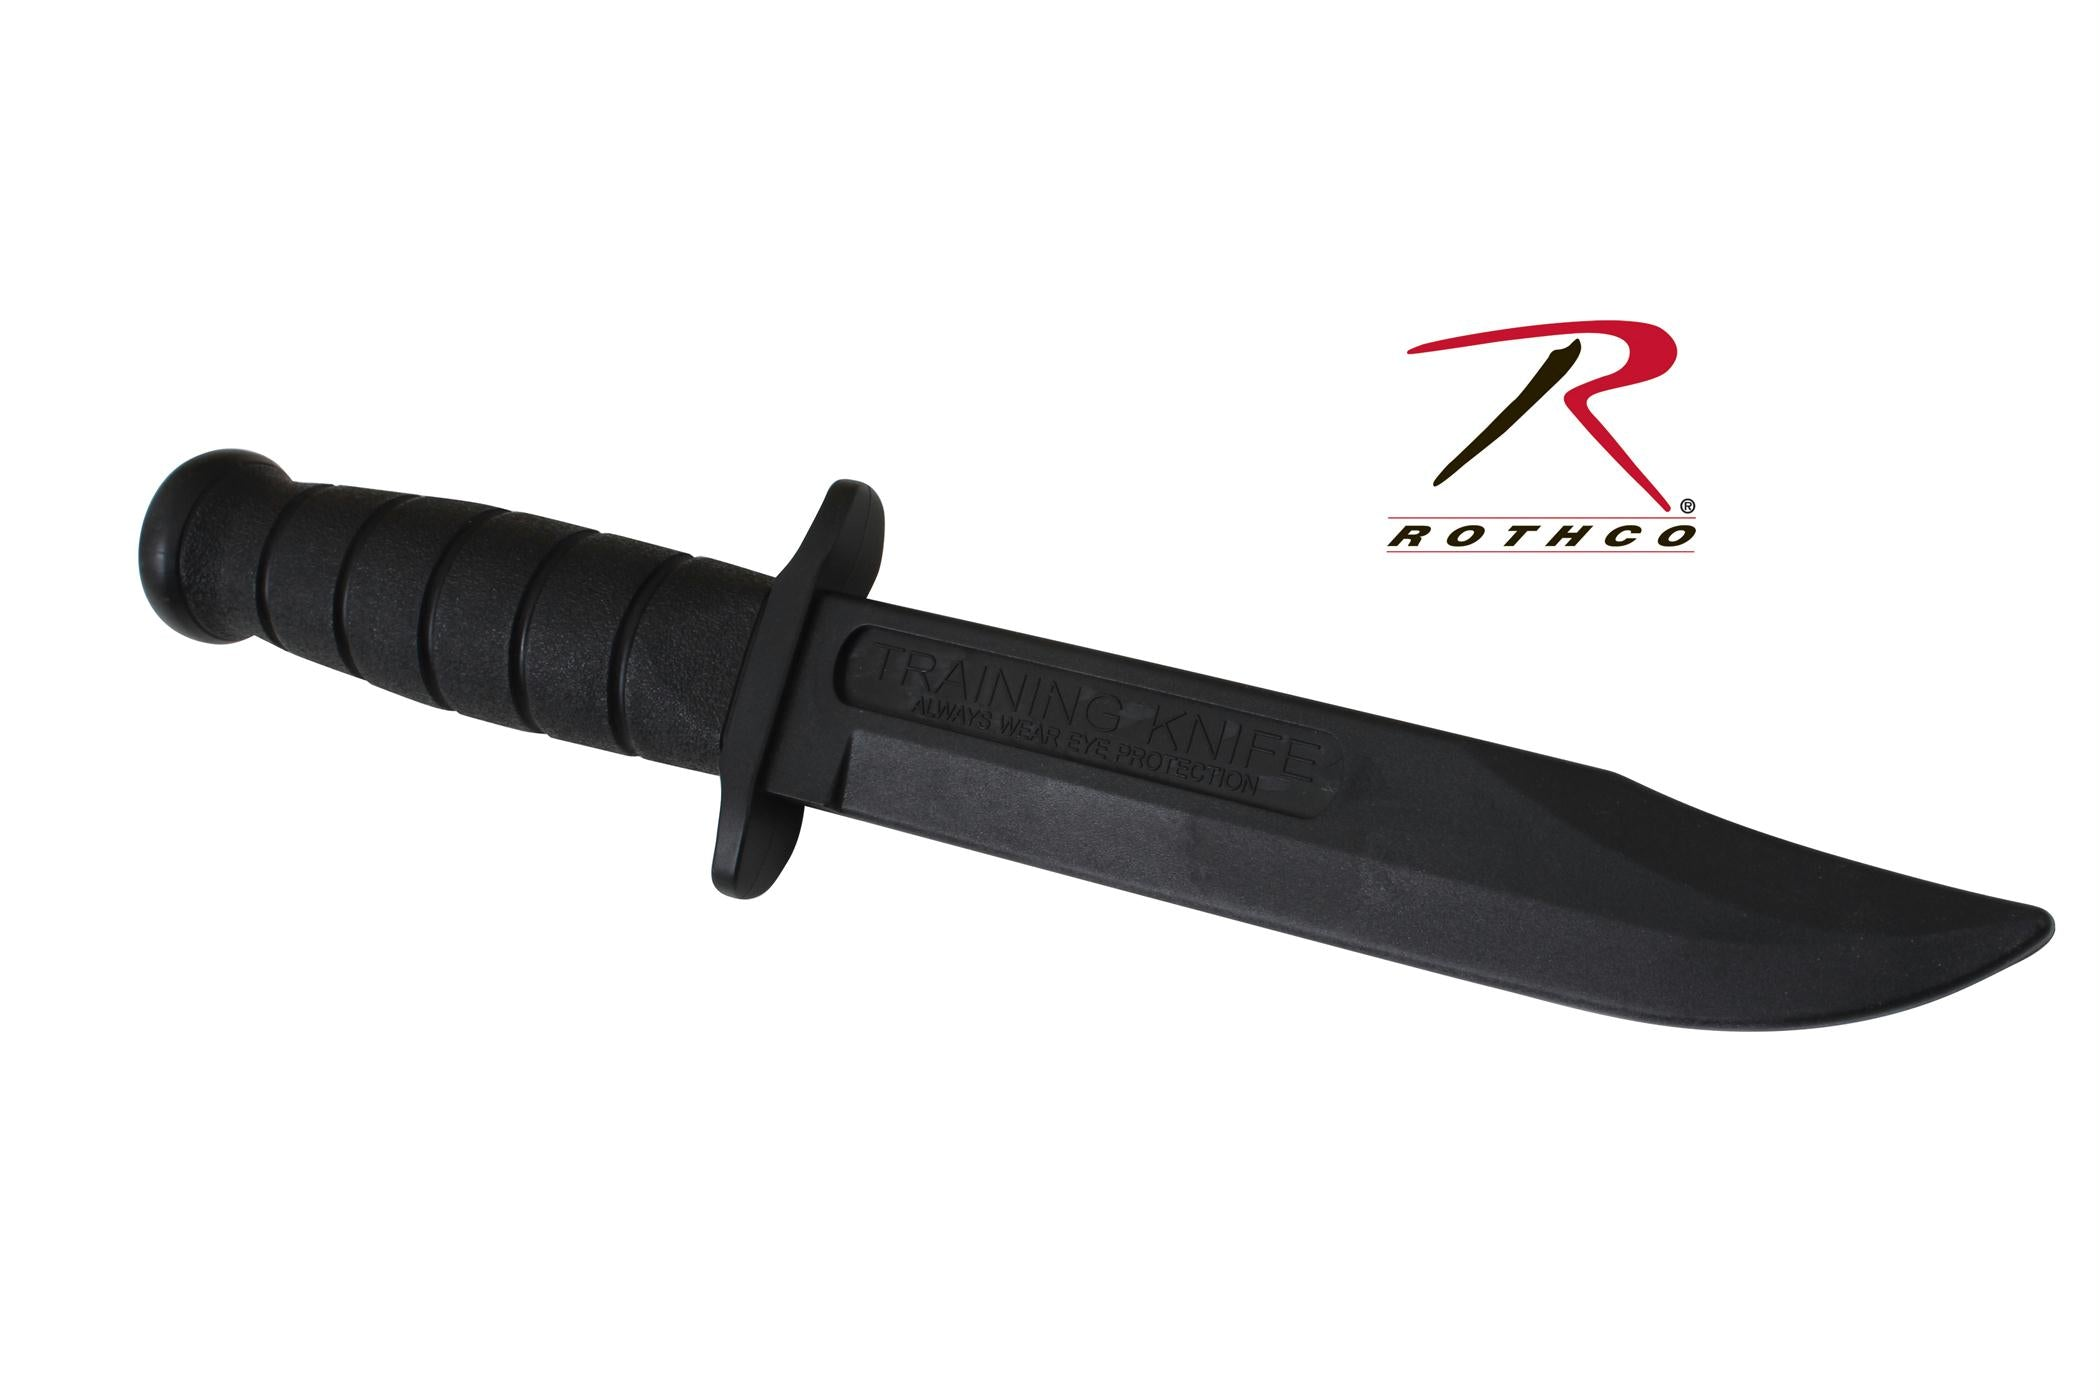 Cold Steel Leather Neck-Semper Fi Rubber Training Knife